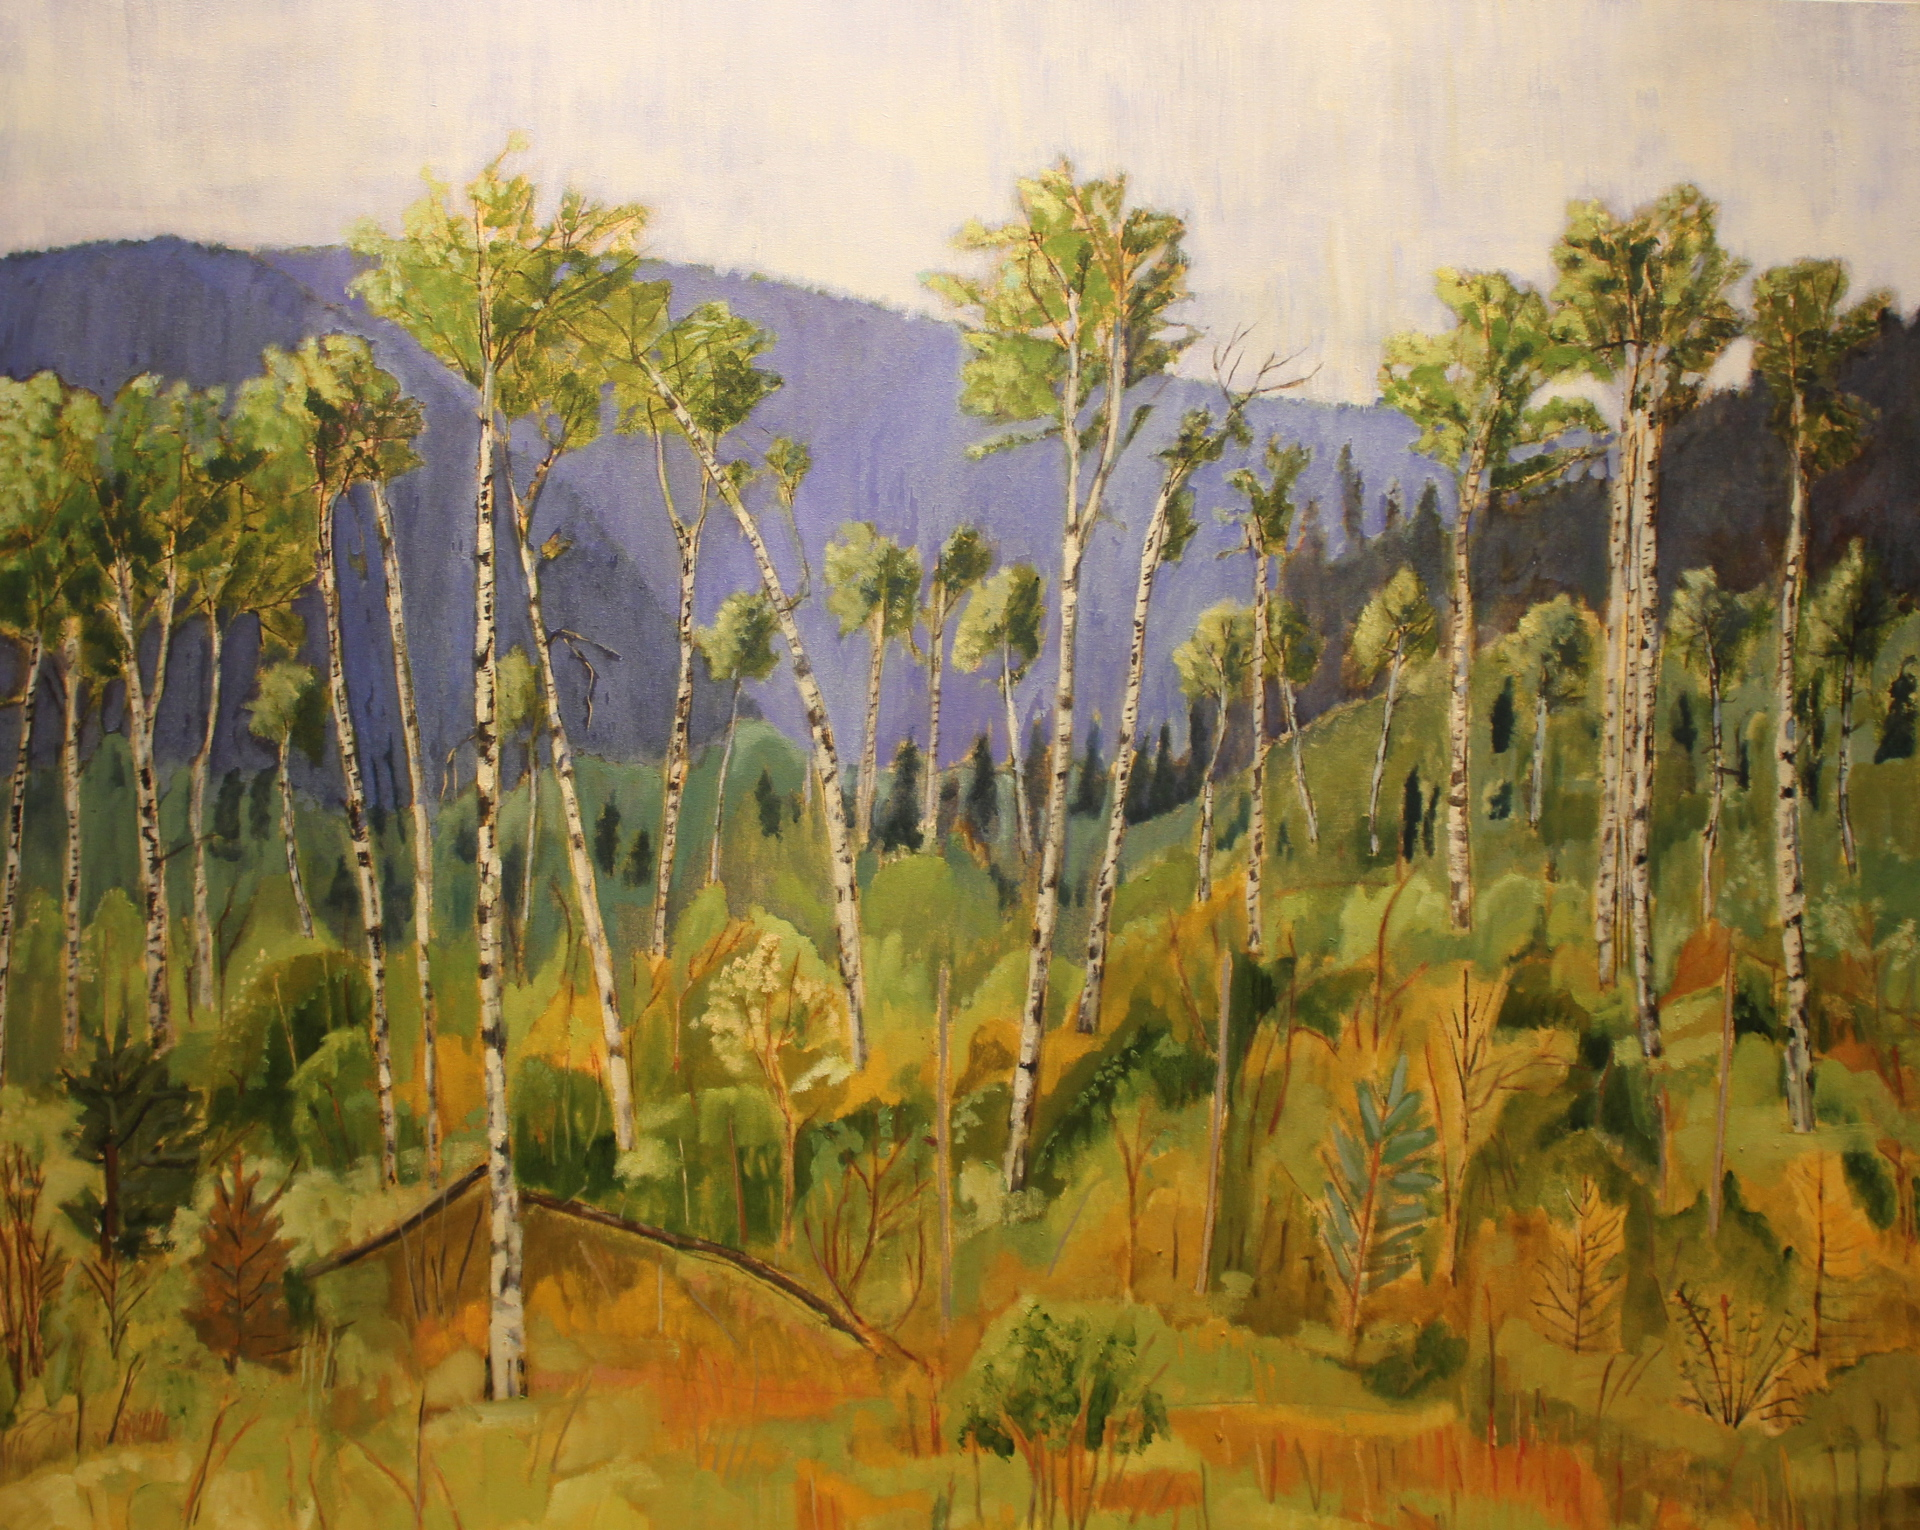 CHERRY RIDGE THROUGH THE TREES - 40 X 50 - OIL ON CANVAS - 2014